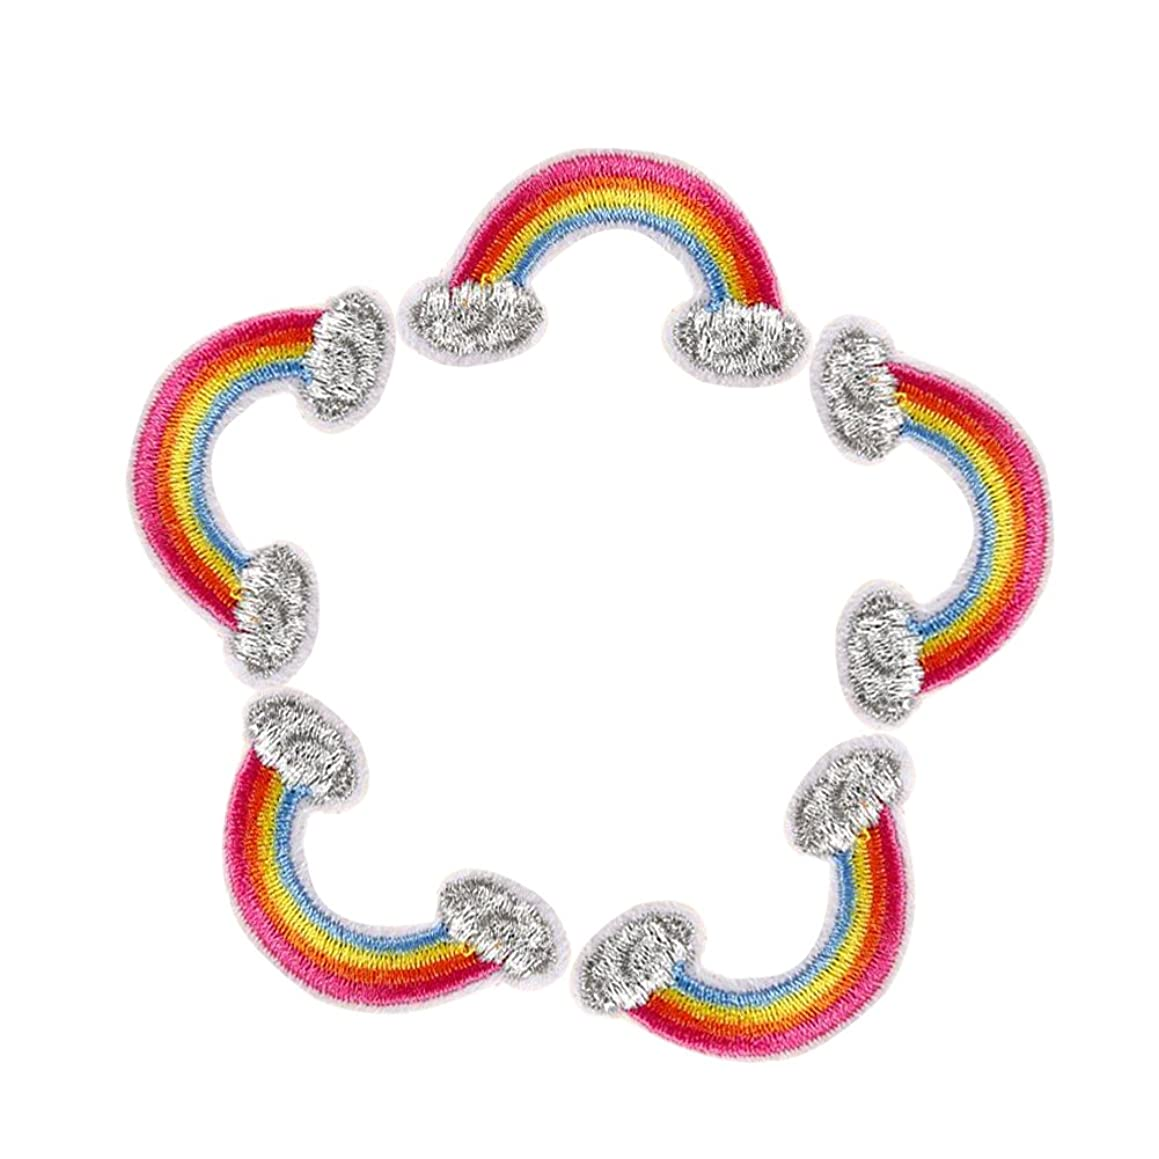 """XUNHUI Embroidered Iron on Patches for Clothes Cute Rainbow Deal with it Clothing DIY Motif Applique 5PCS (1.1""""X 2"""")"""